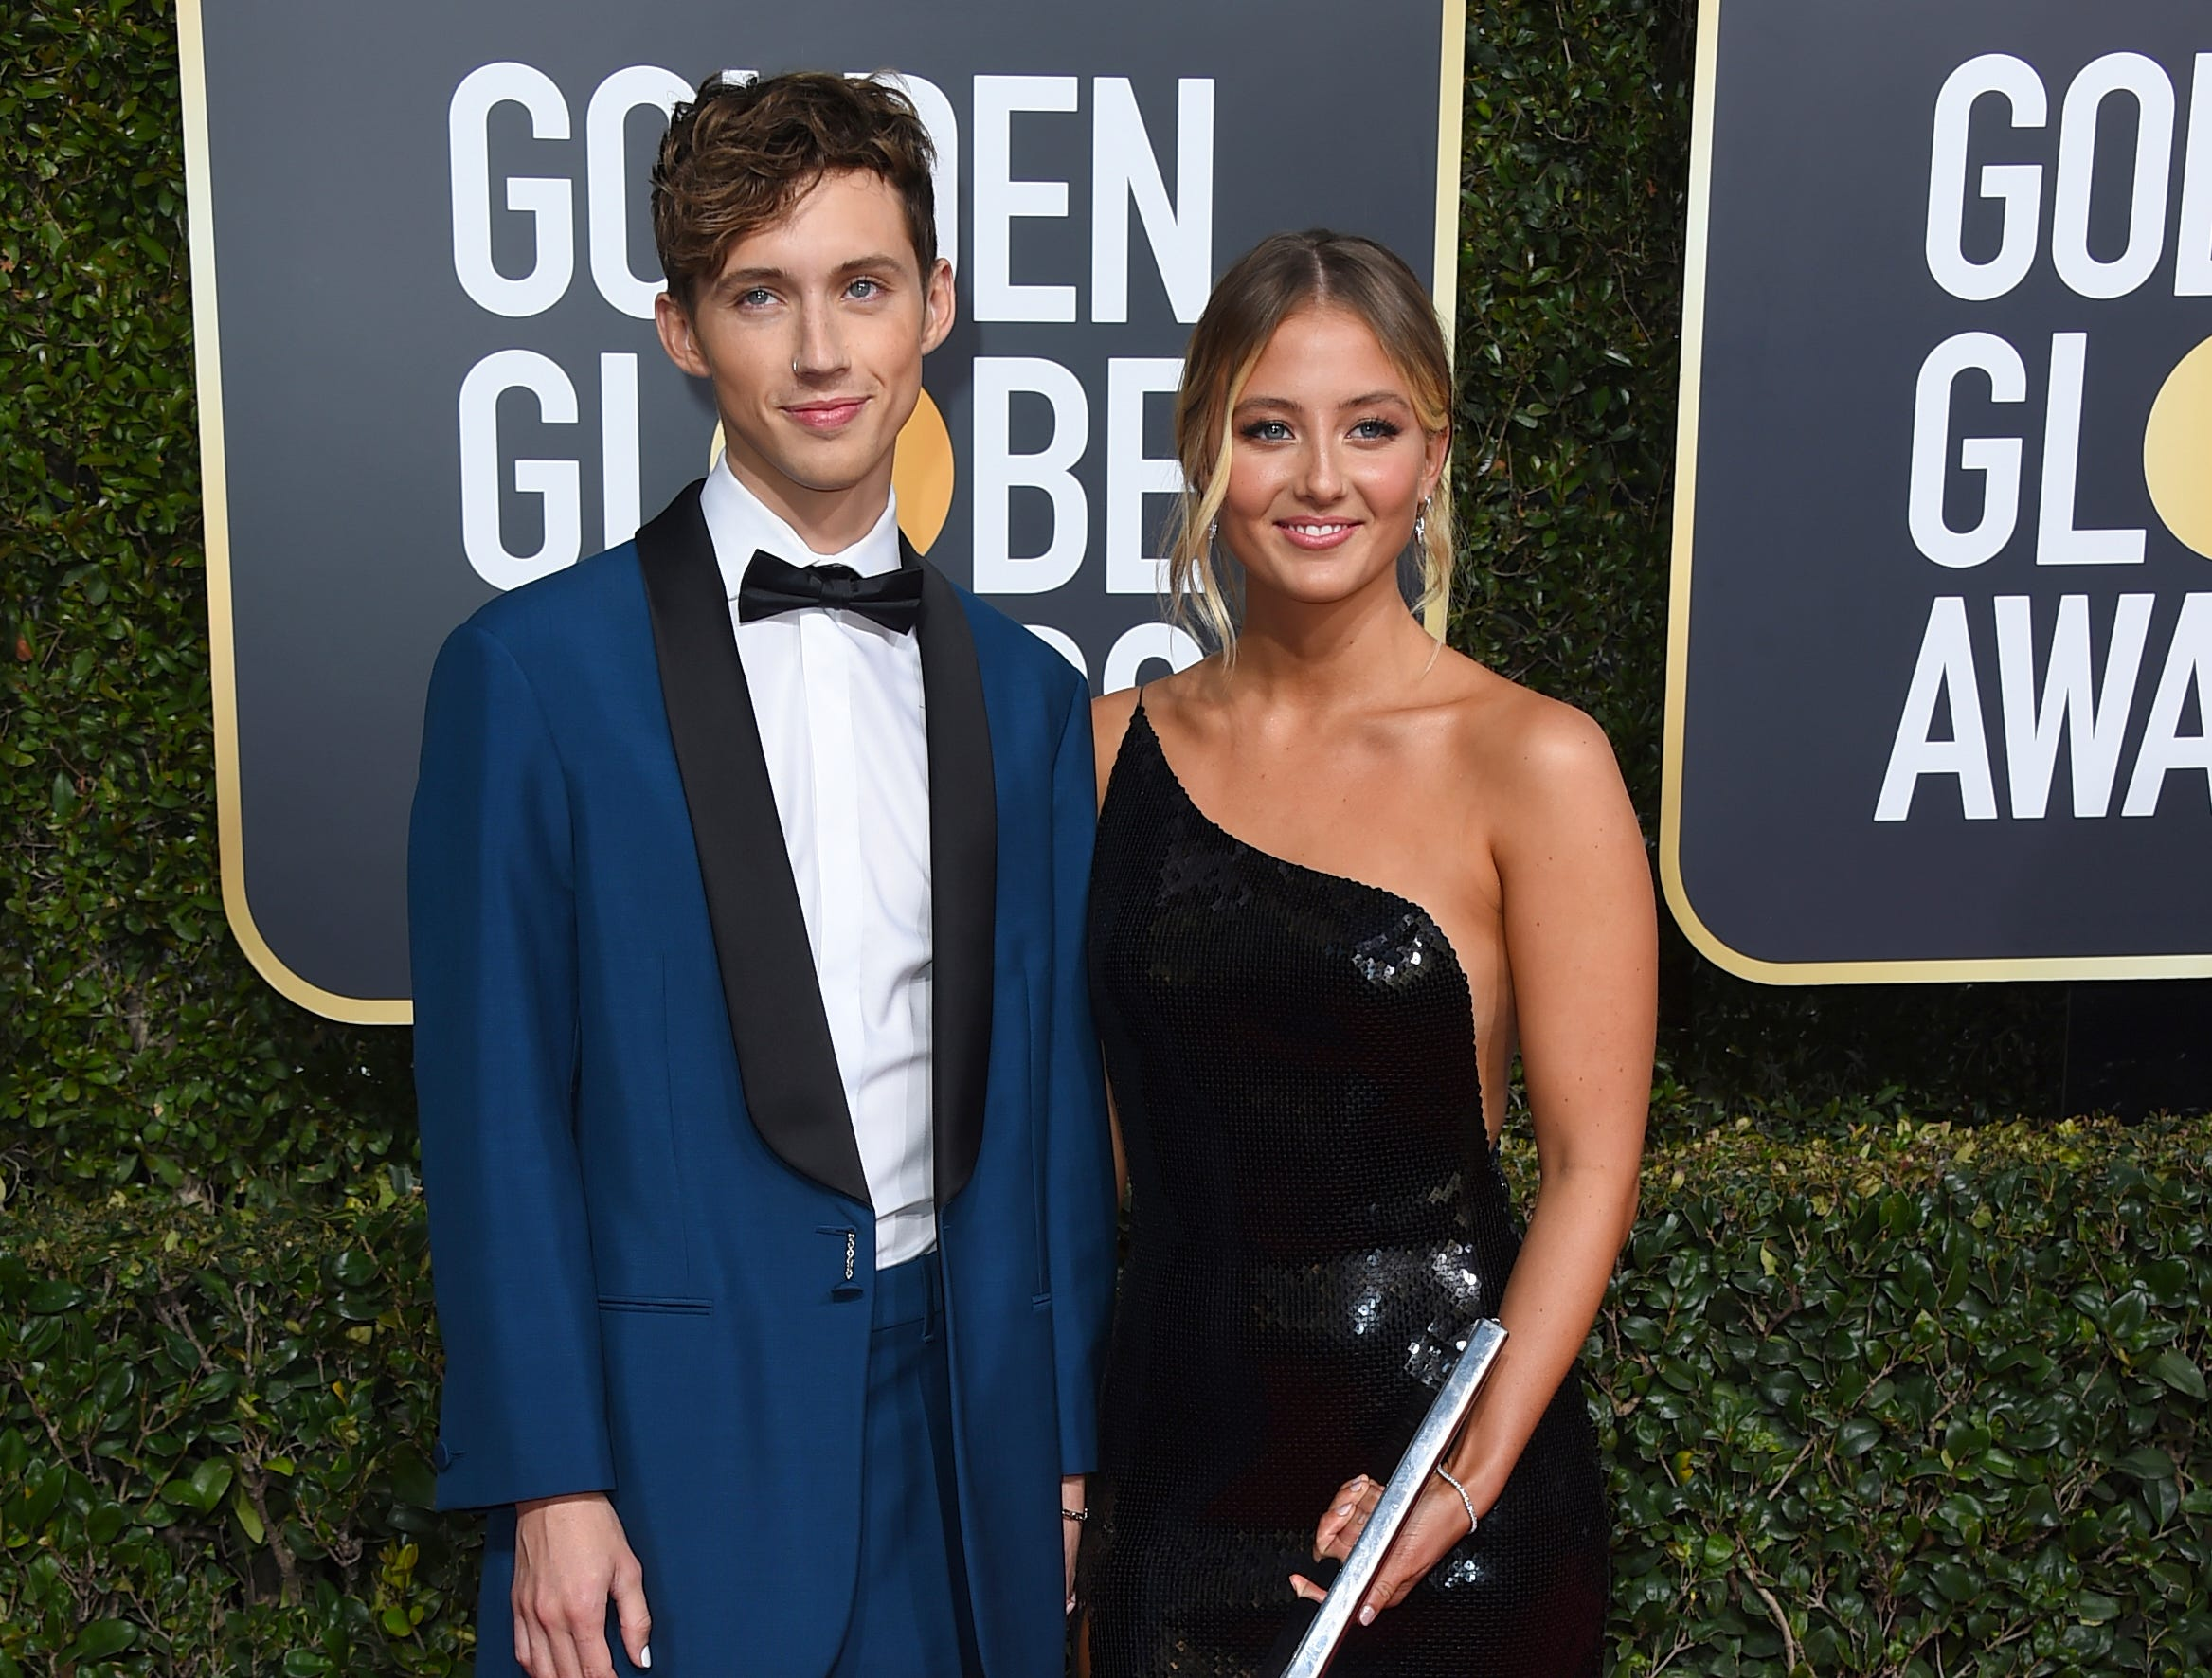 Troye Sivan, left, and Sage Sivan arrive at the 76th annual Golden Globe Awards at the Beverly Hilton Hotel.